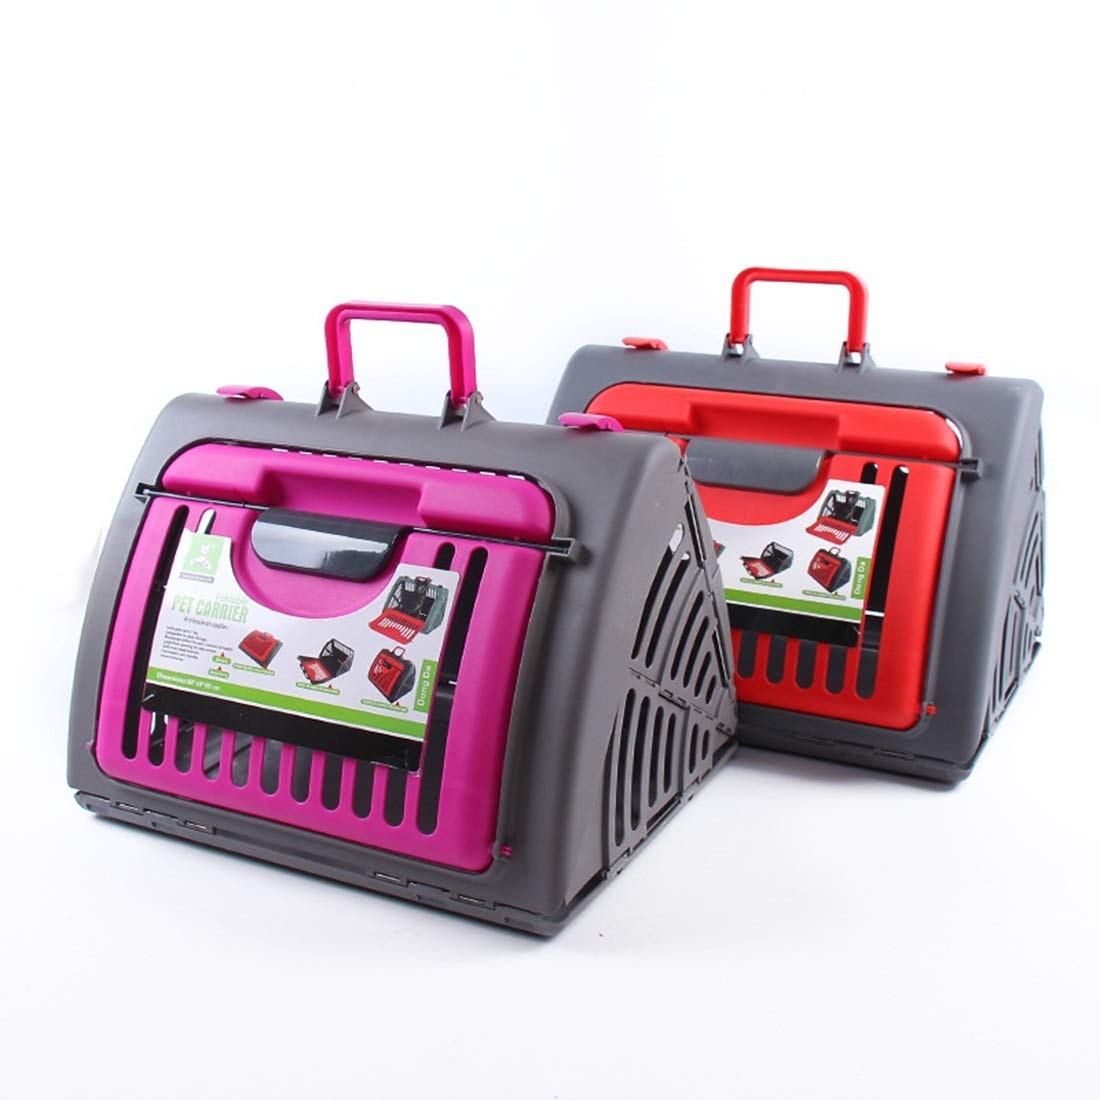 pink red yellow 46X23X35cm pink red yellow 46X23X35cm Kamiwwso Plastic Breathable Cat And Dog Travel Bags Large Capacity Handbag Pet Supplies Pet Bags (color   pink red yellow, Size   46X23X35cm)